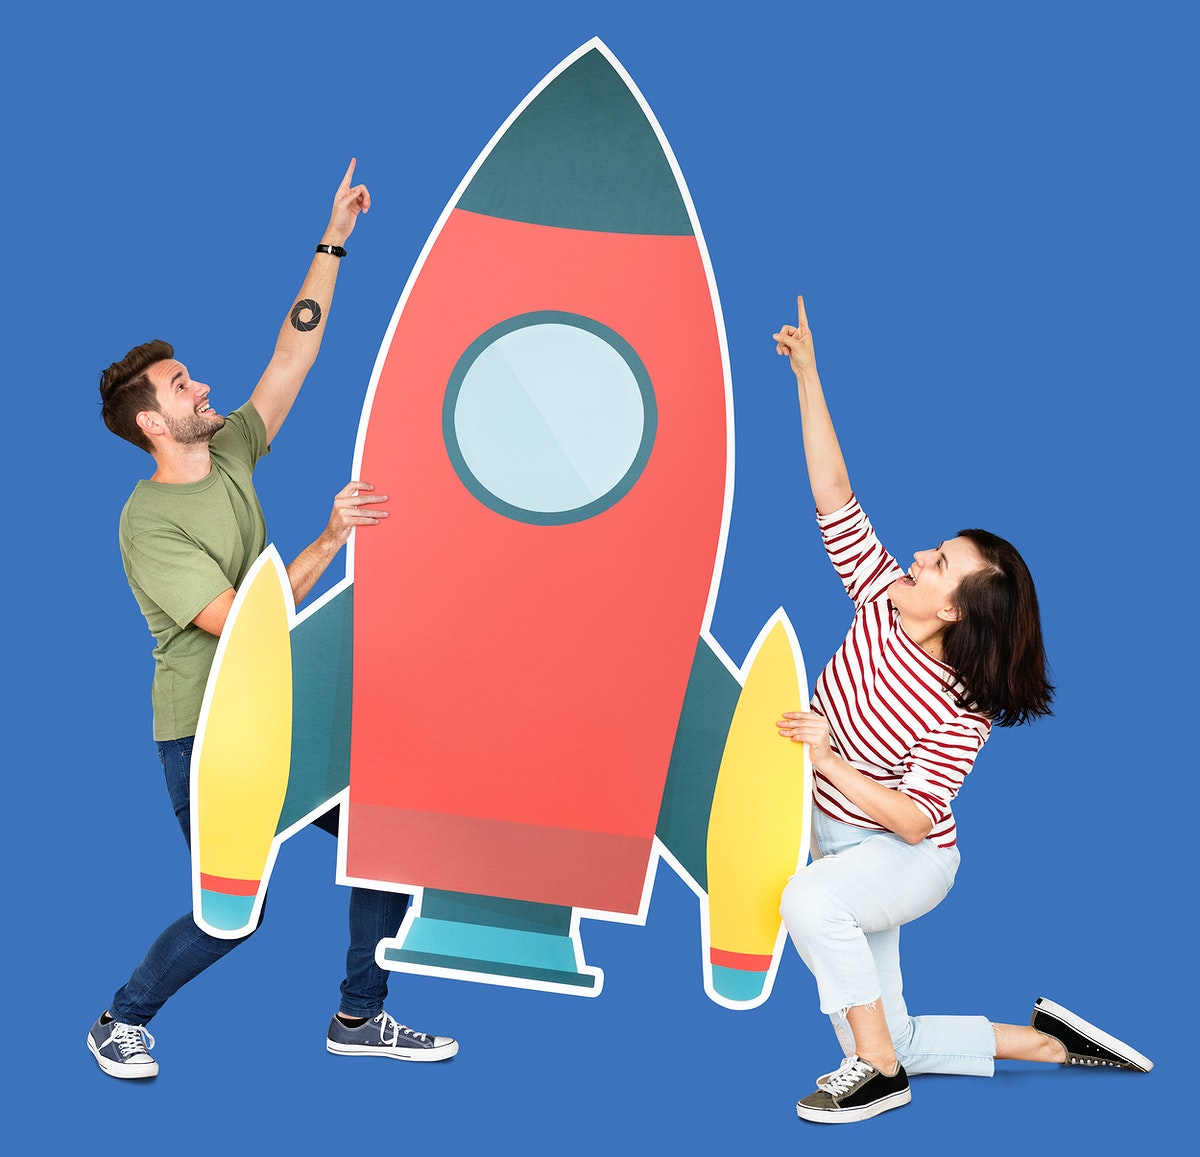 Technology and innovation concept shoot featuring a rocket icon